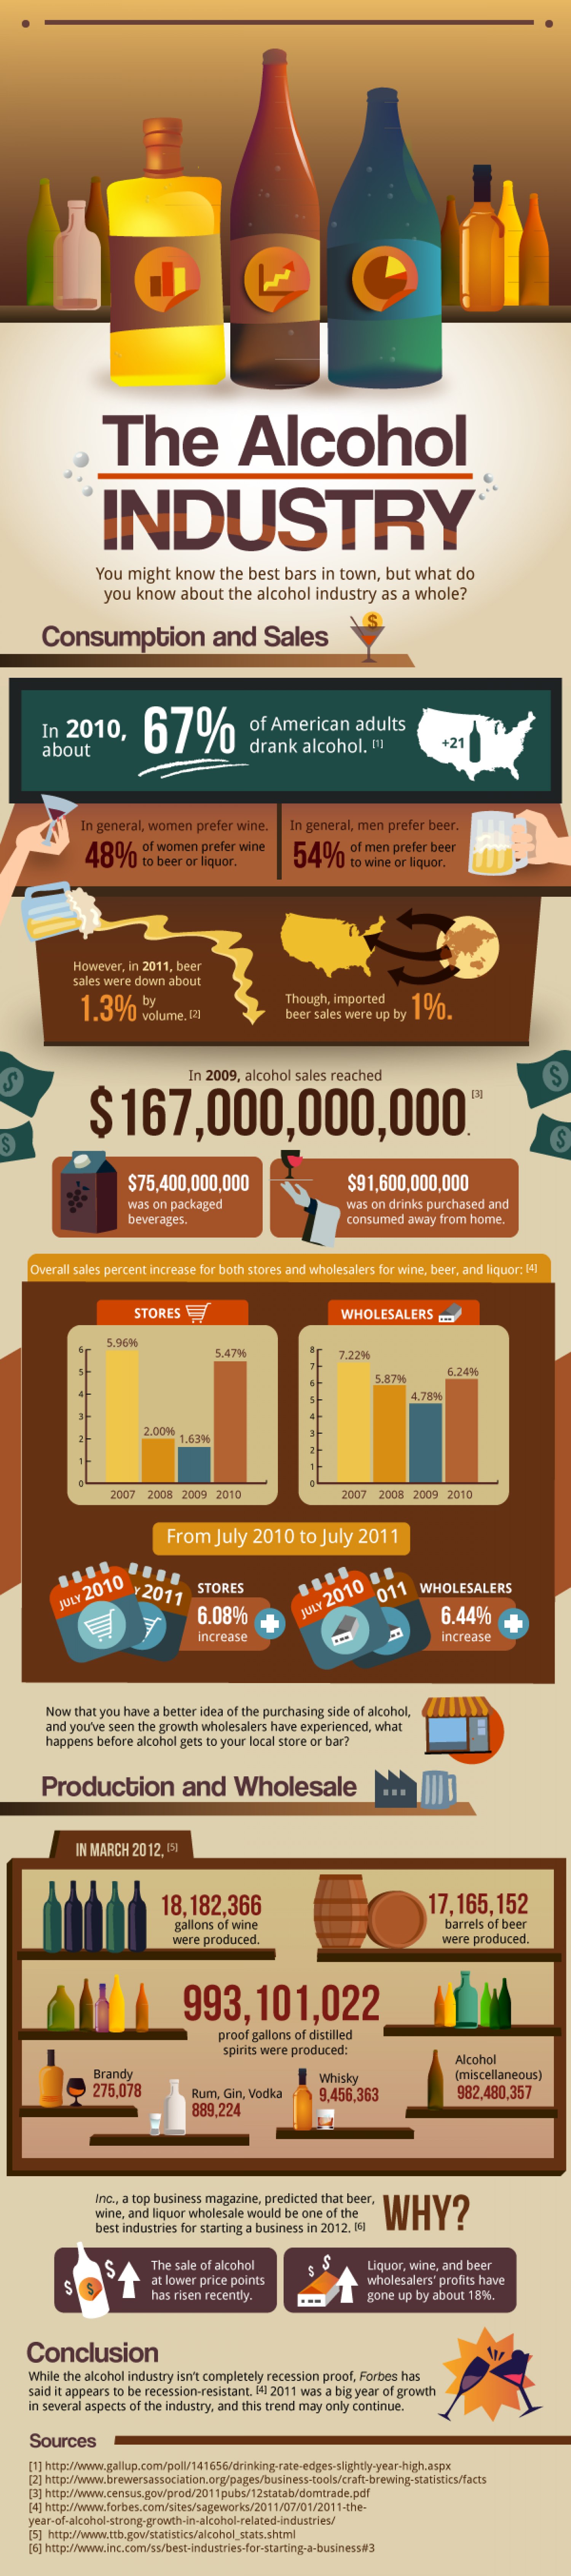 Alcohol: A Recession-Proof Industry? Infographic